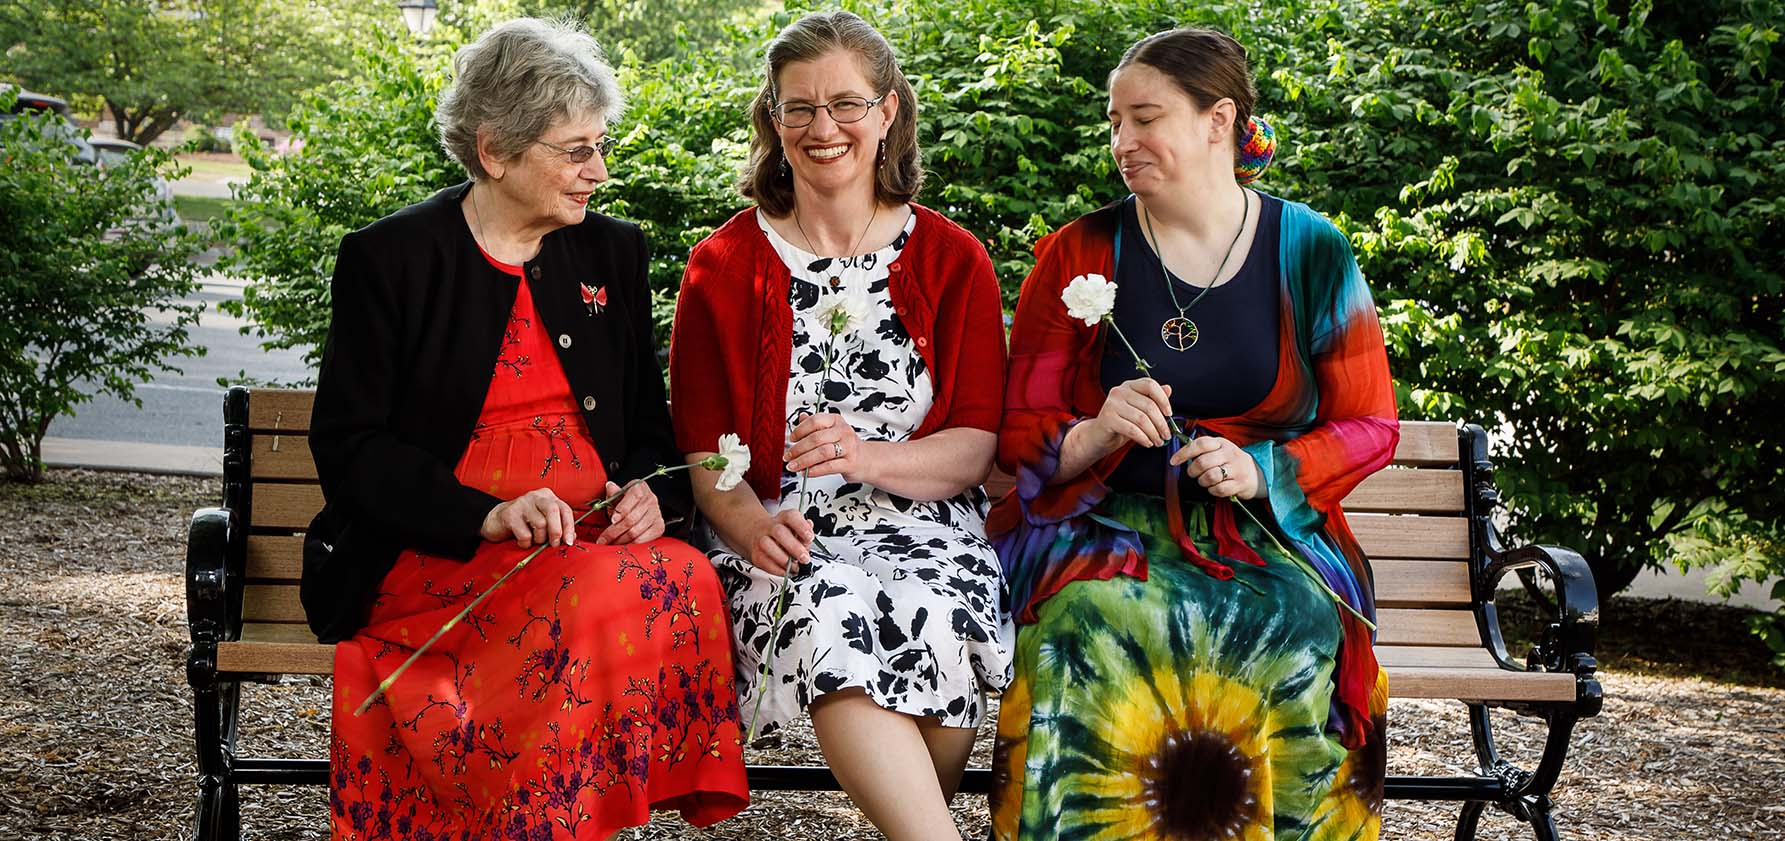 Nena Asquith, Meredith Twardowski, and Shannon Asquith Stahl share memories of Glenn Asquith on the bench they donated in his honor to Moravian Theological Seminary.